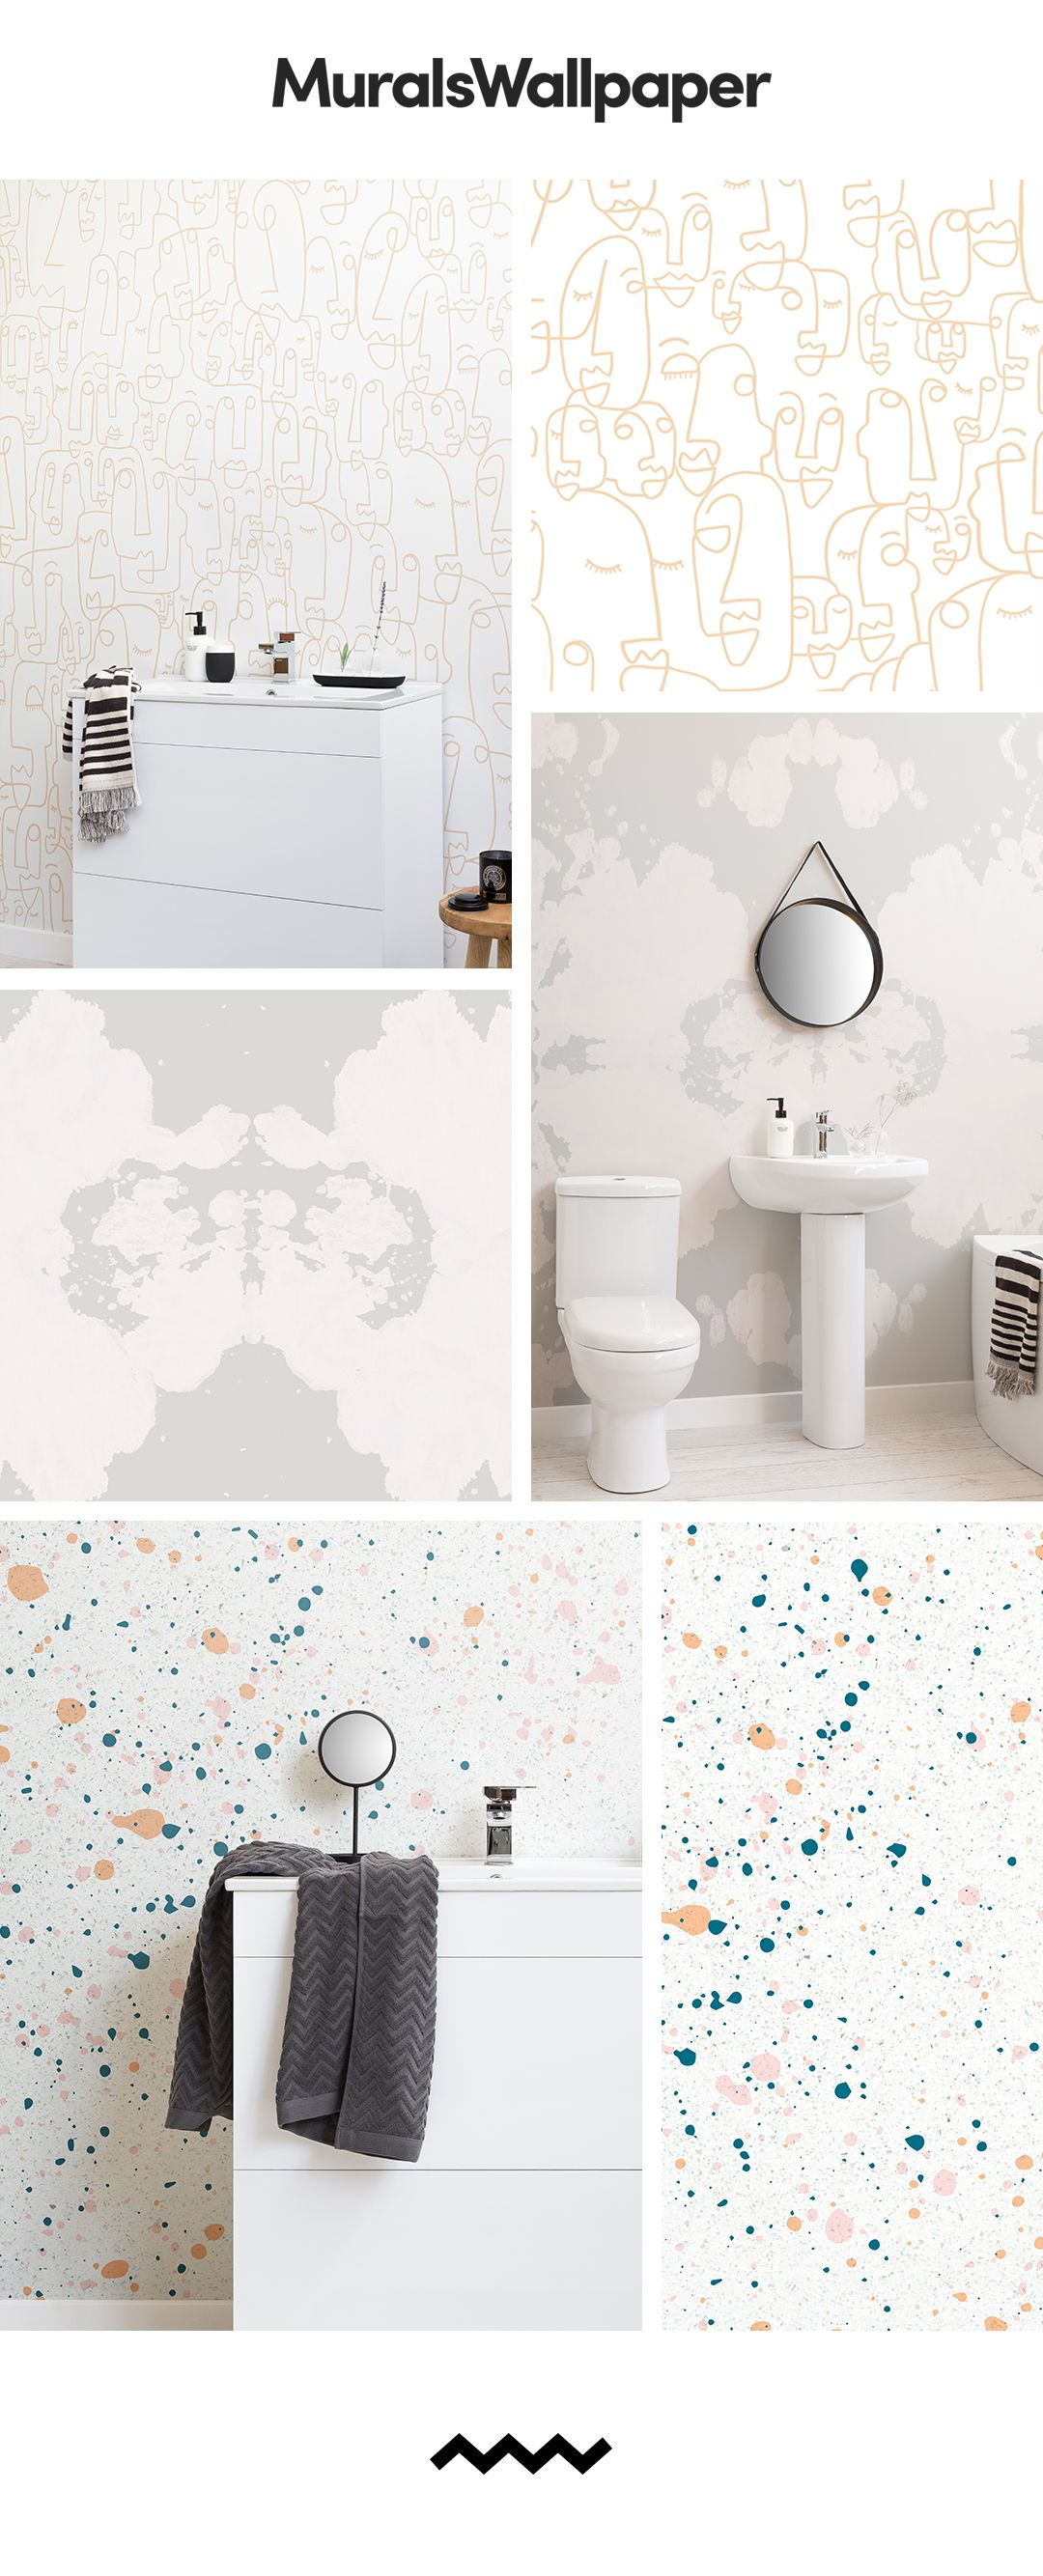 Create A Clean And Modern Bathroom Space With Modern White Bathroom Wallpapers And Murals With Images Bathroom Wallpaper Modern Bathroom Wallpaper Bathroom Interior Design